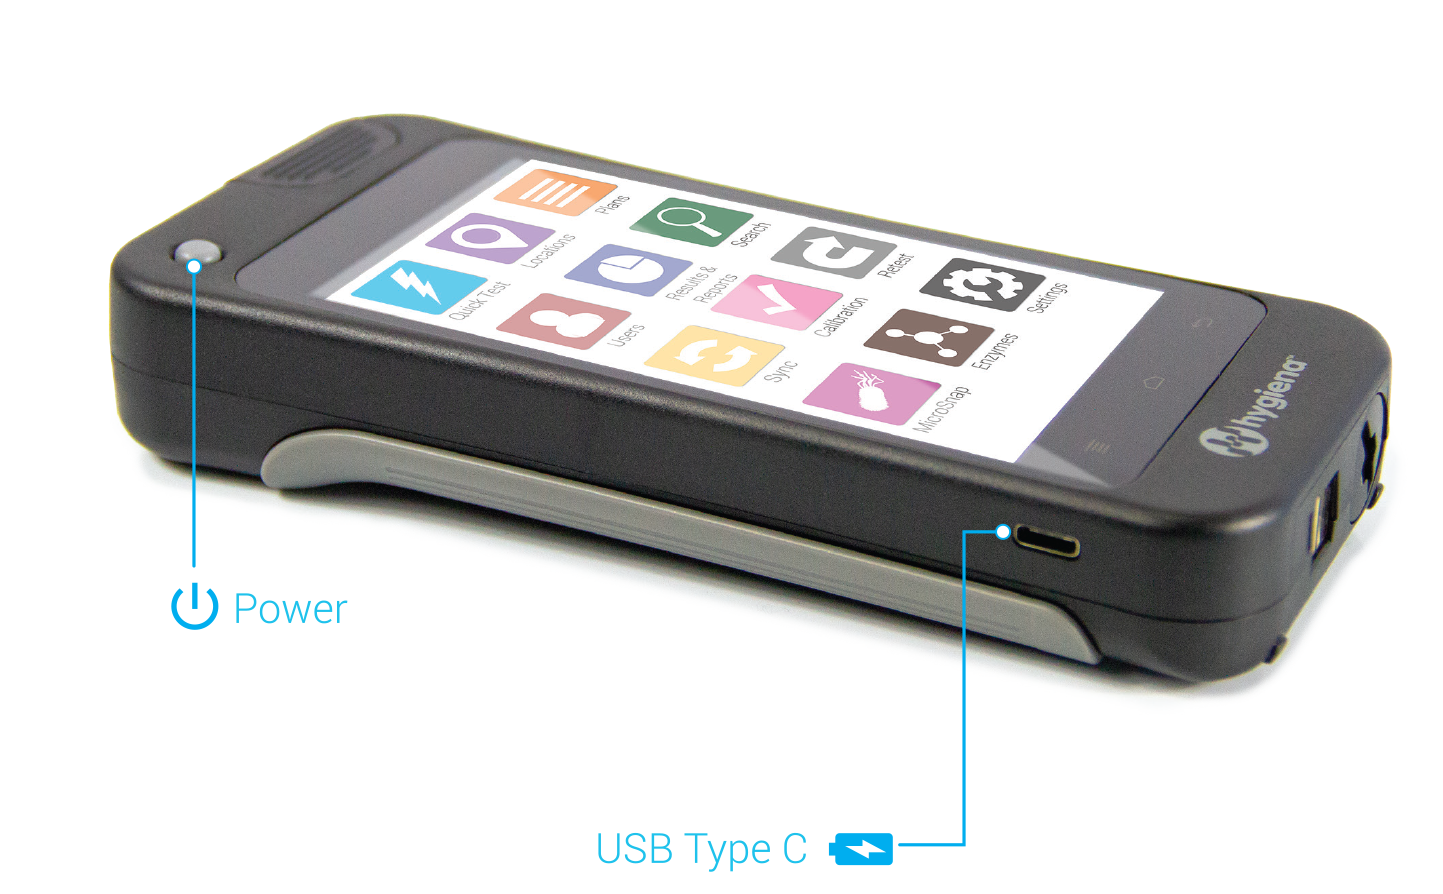 ET power and usb